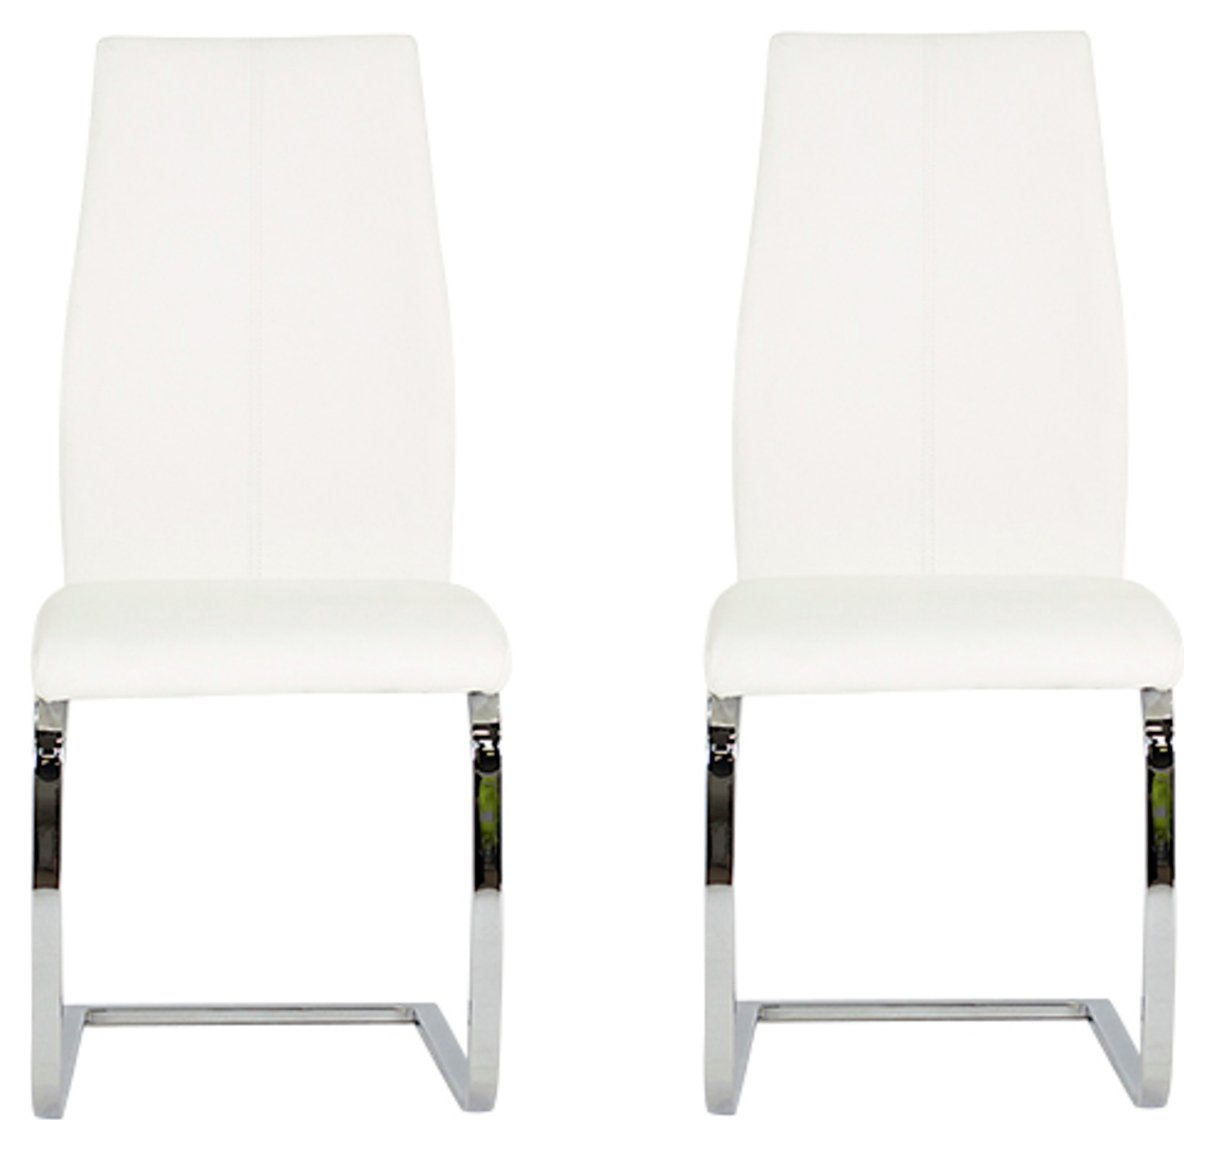 Image of Furnoko Elis Pair of Leather Effect Dining Chairs - White